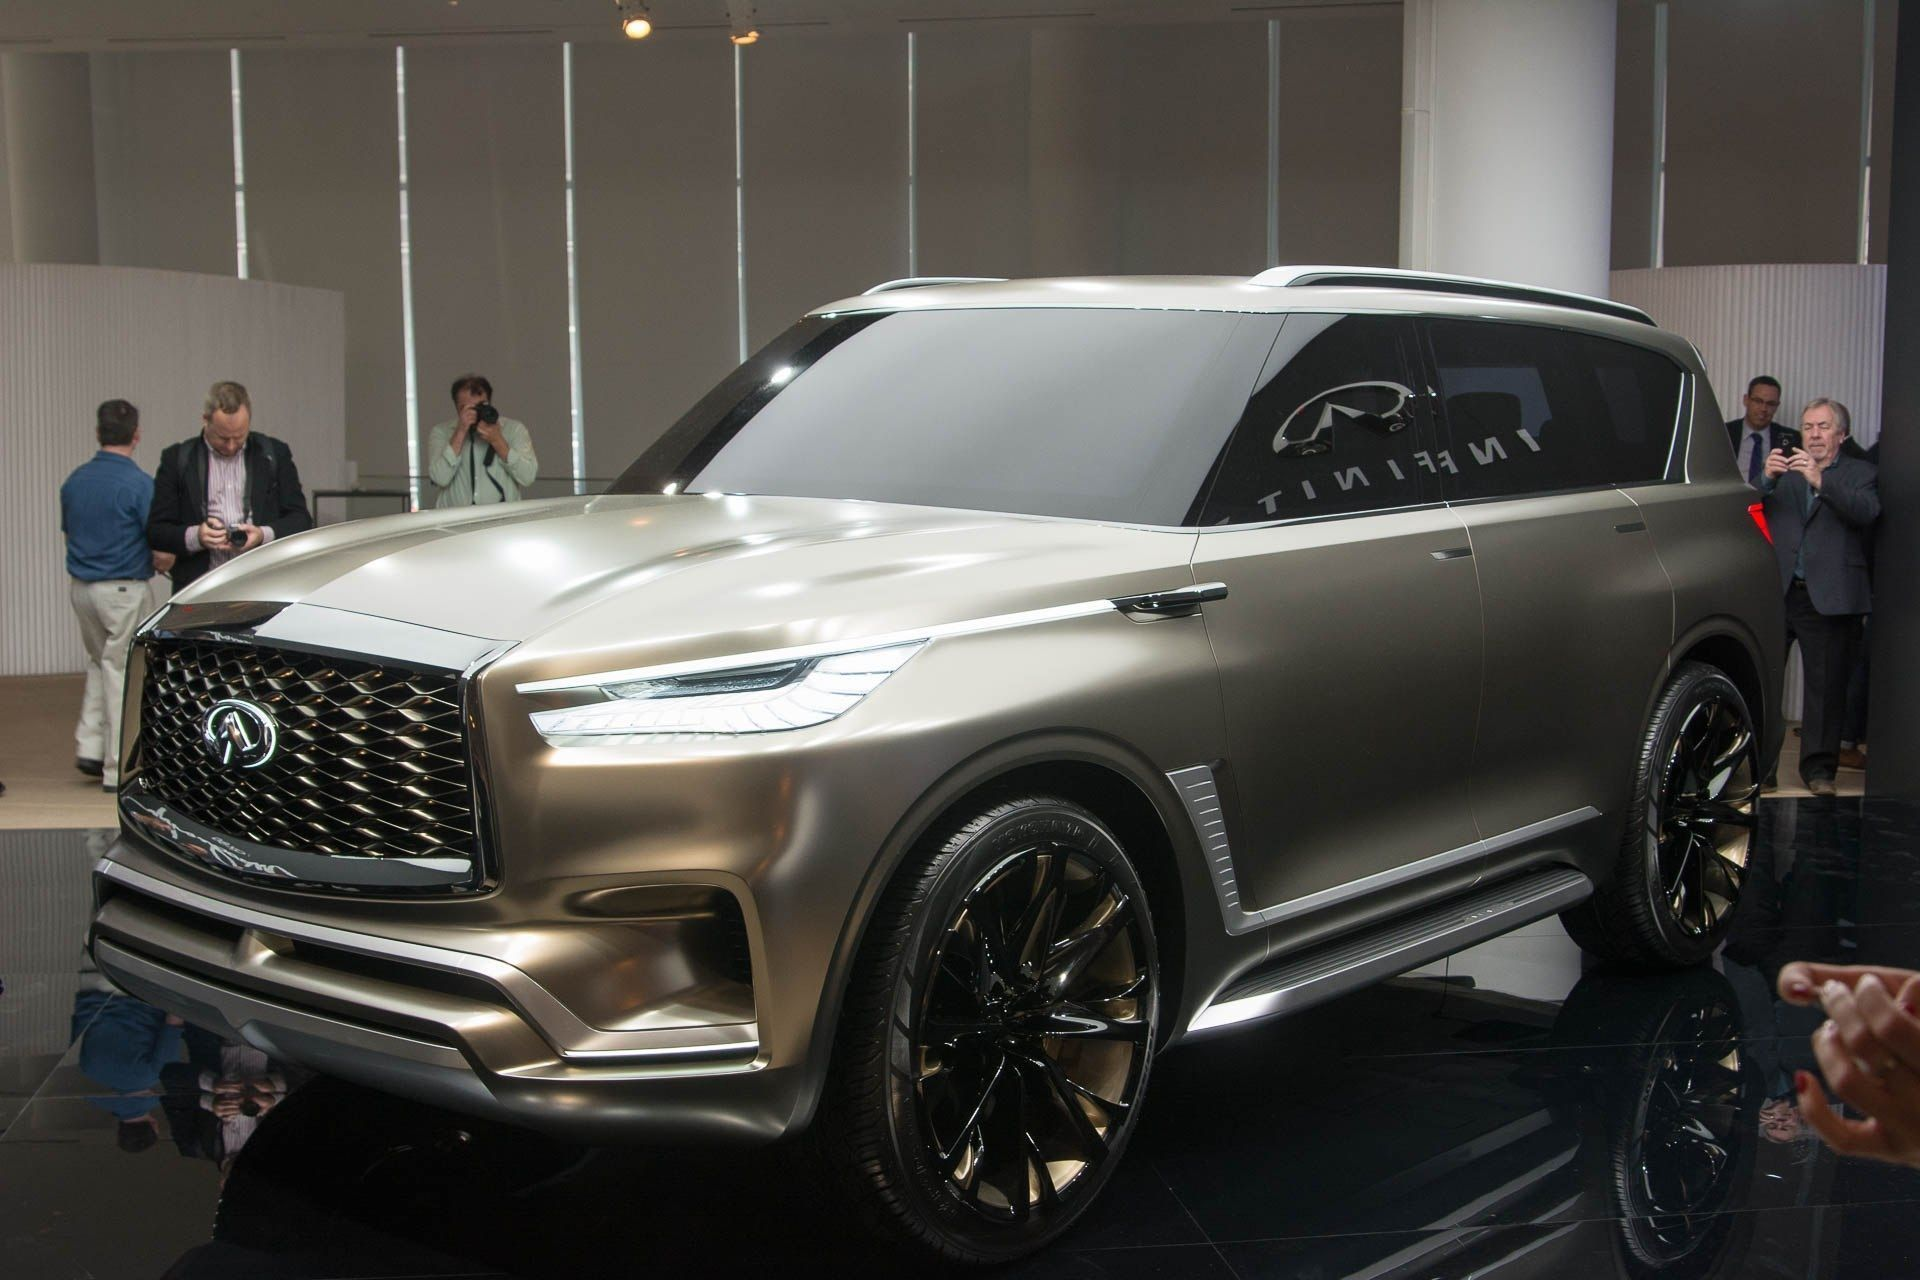 New Infiniti Suv 2021 in 2020 Luxury suv, Suv, Infiniti